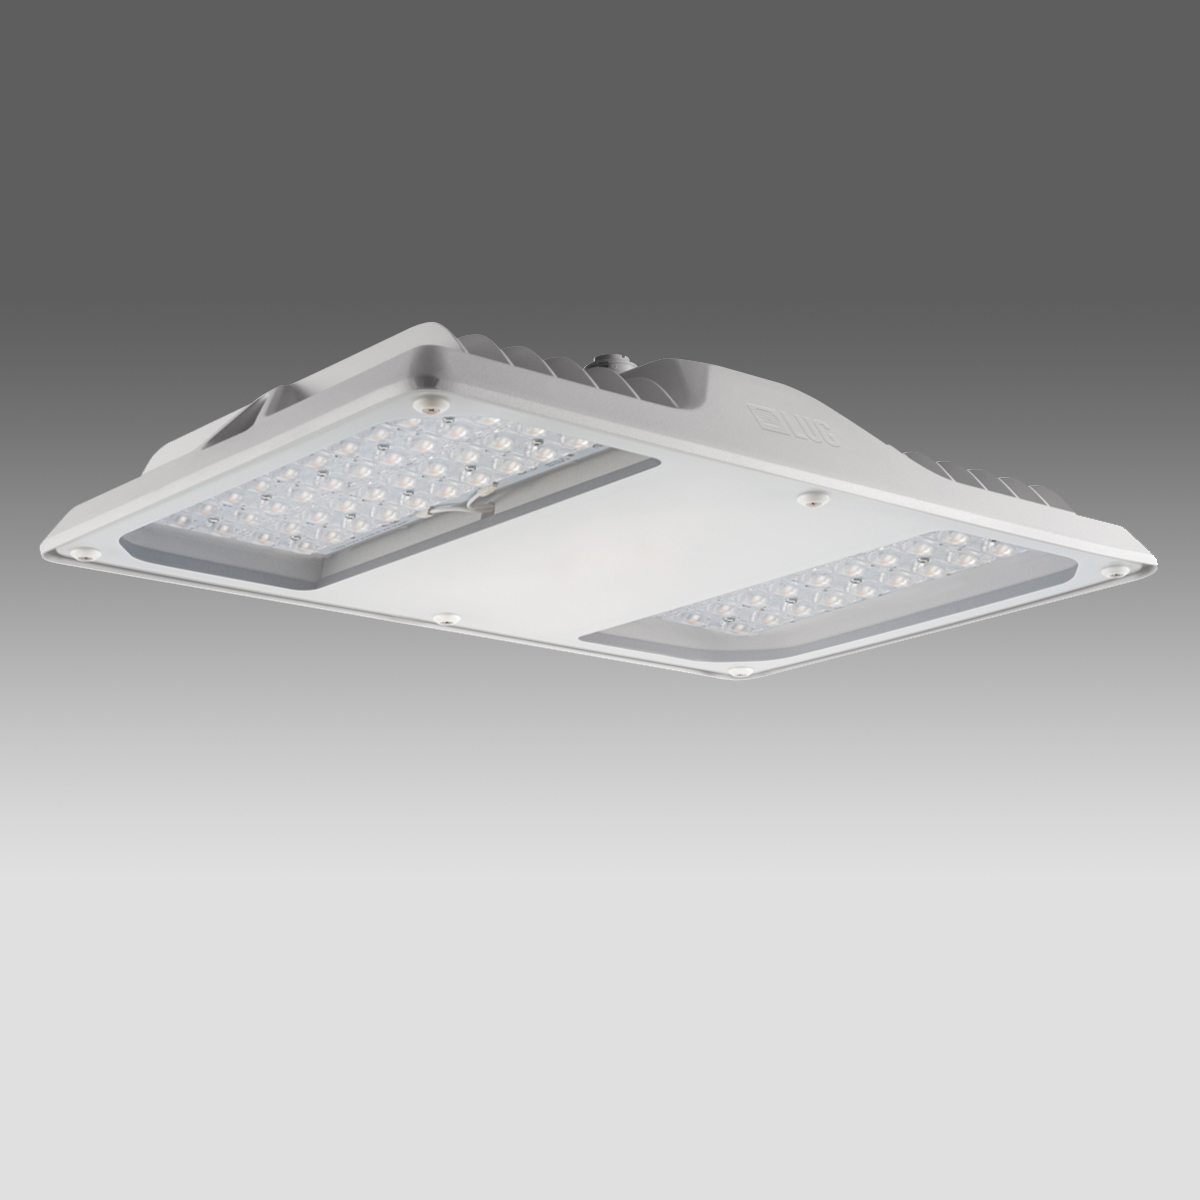 1 Stk Arktur Square PLUS LED 206W 23200lm/840 EVG IP65 55° grau LIG4254011